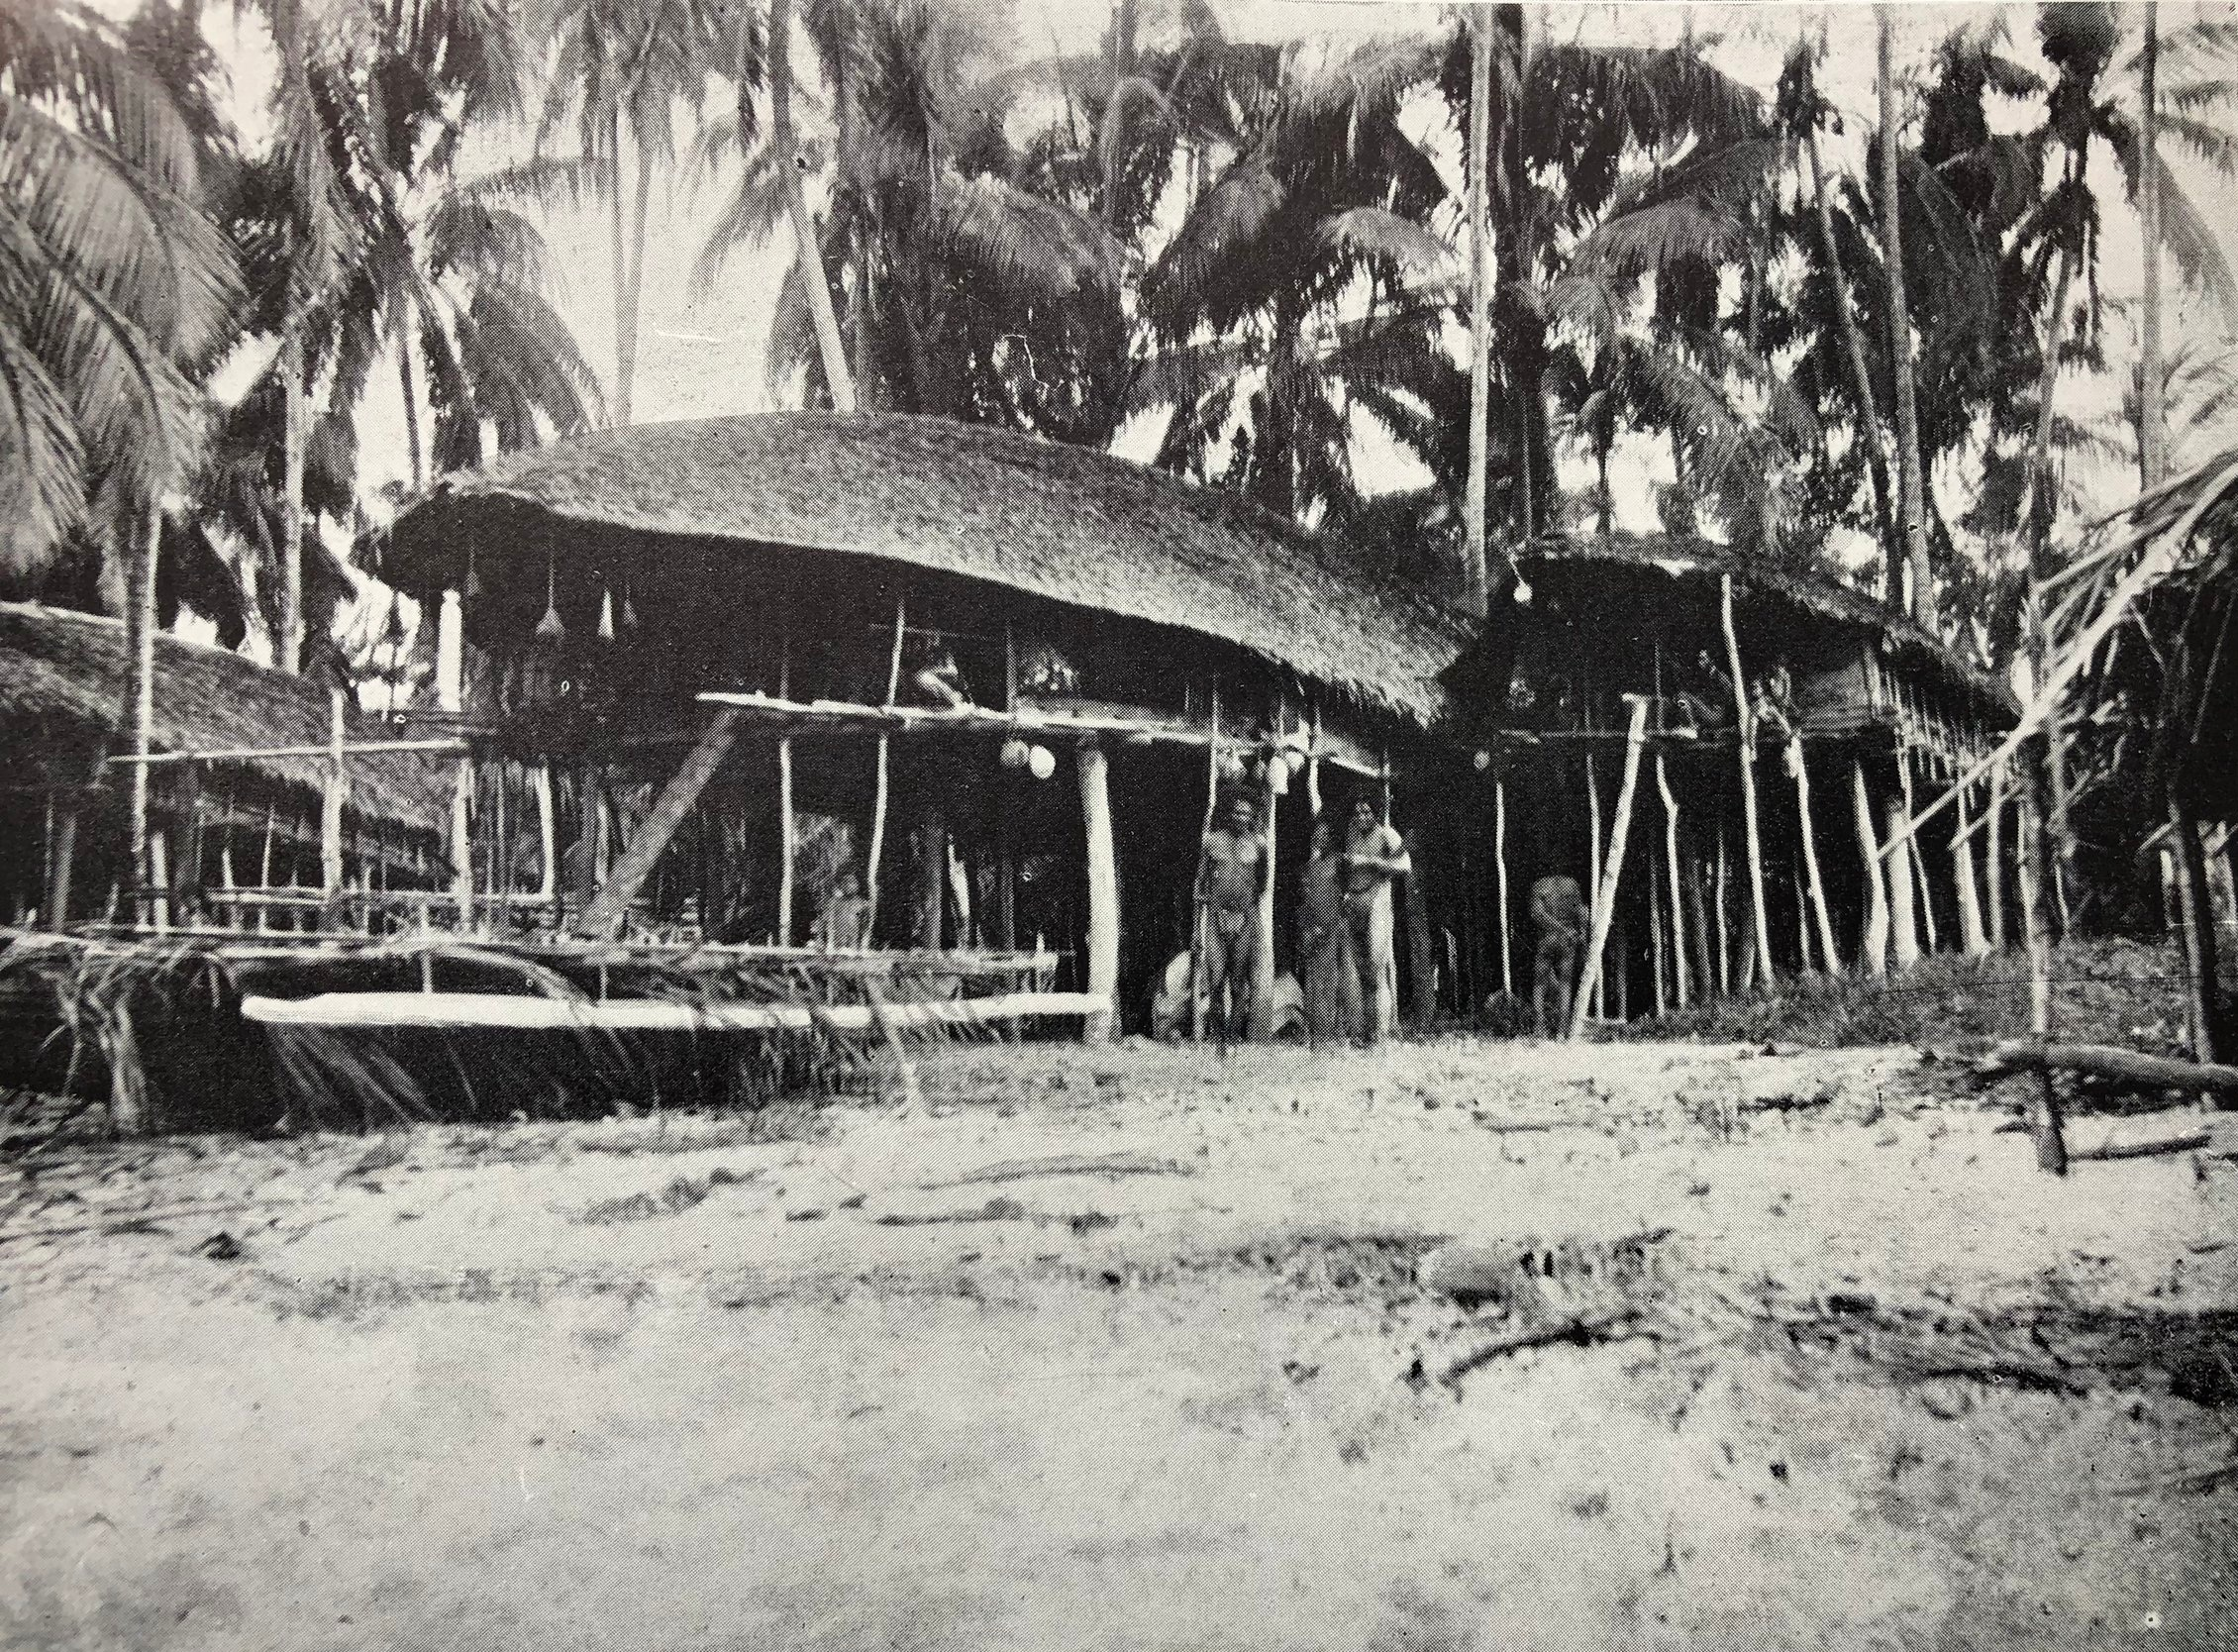 Characteristic Biak-style dwellings (1907) with turtle-shaped roofs located at Wari village, on the northwest coast of Biak Island.